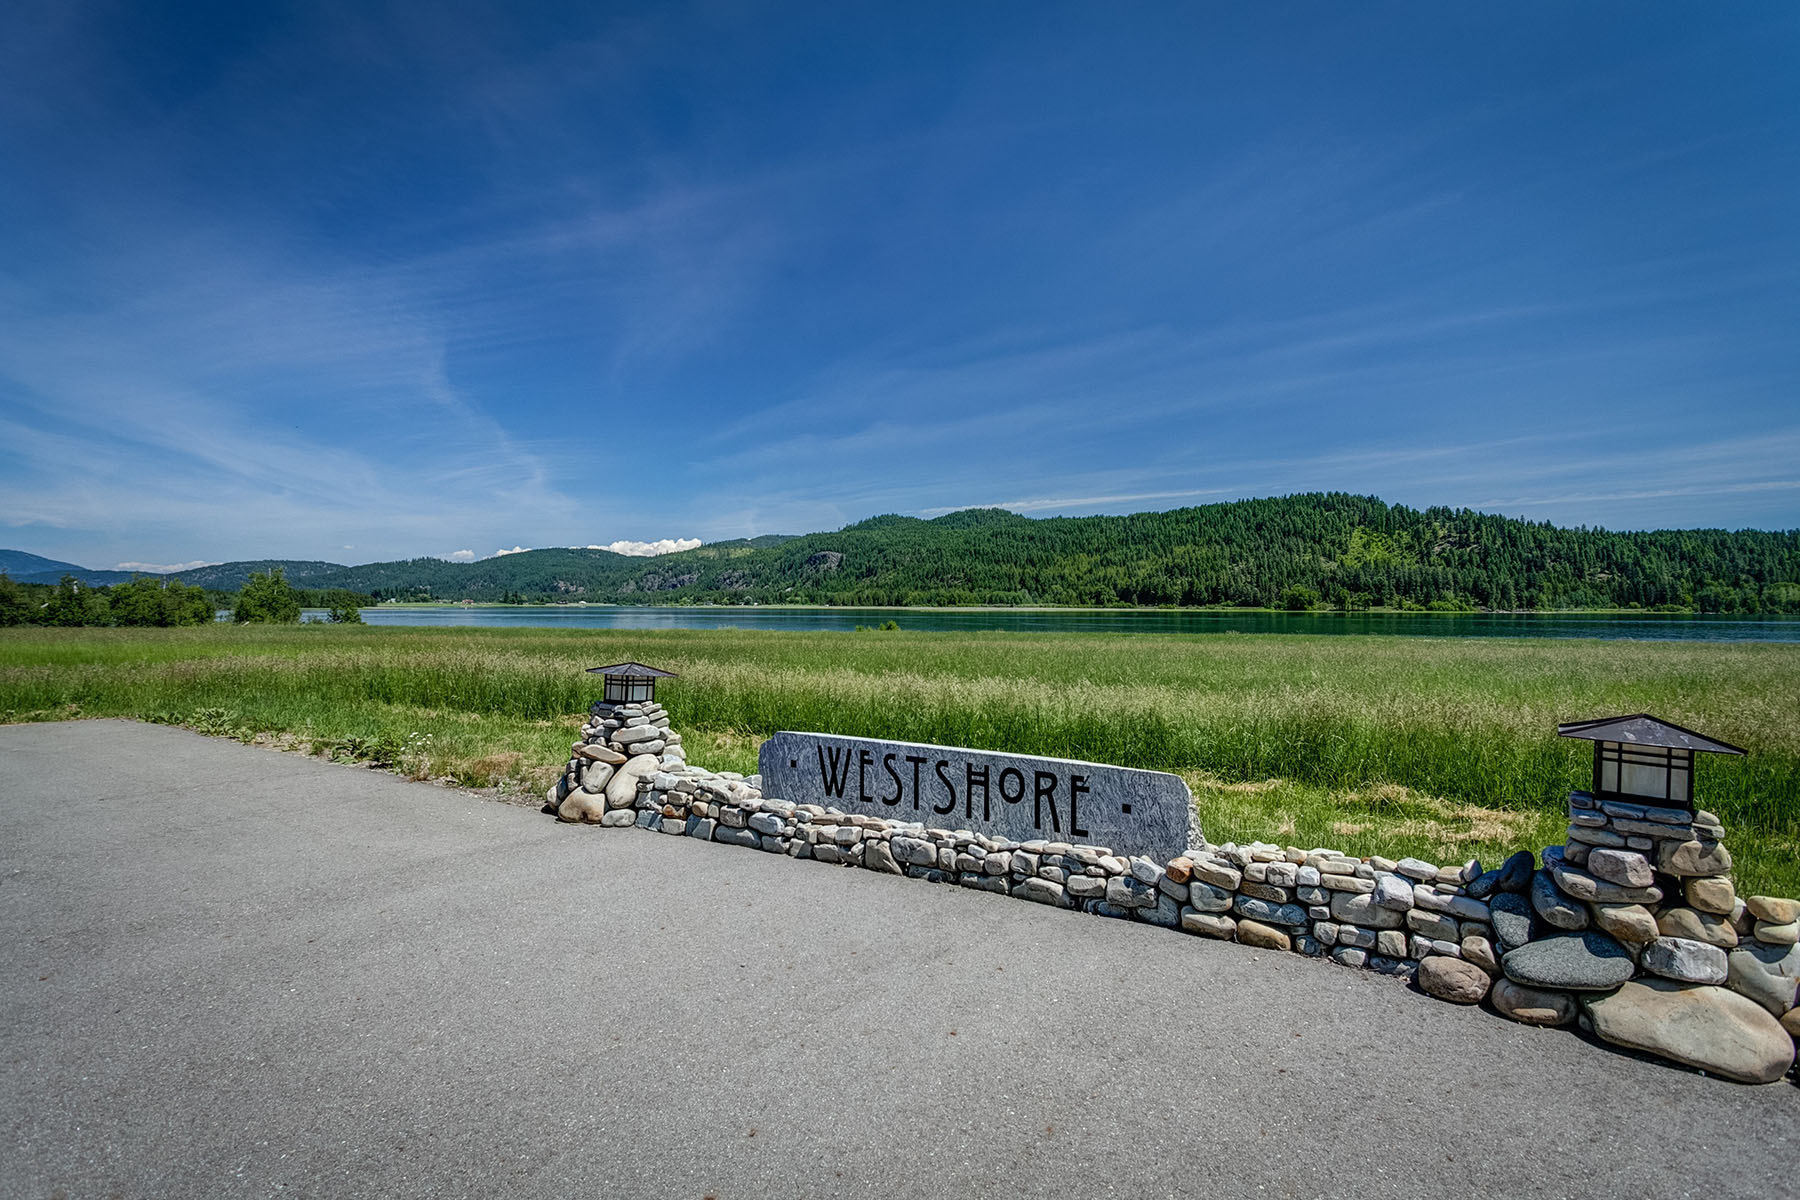 Land for Sale at Westshore Waterfront Building Sites Lot 5 Westshore Way, Laclede, Idaho, 83841 United States